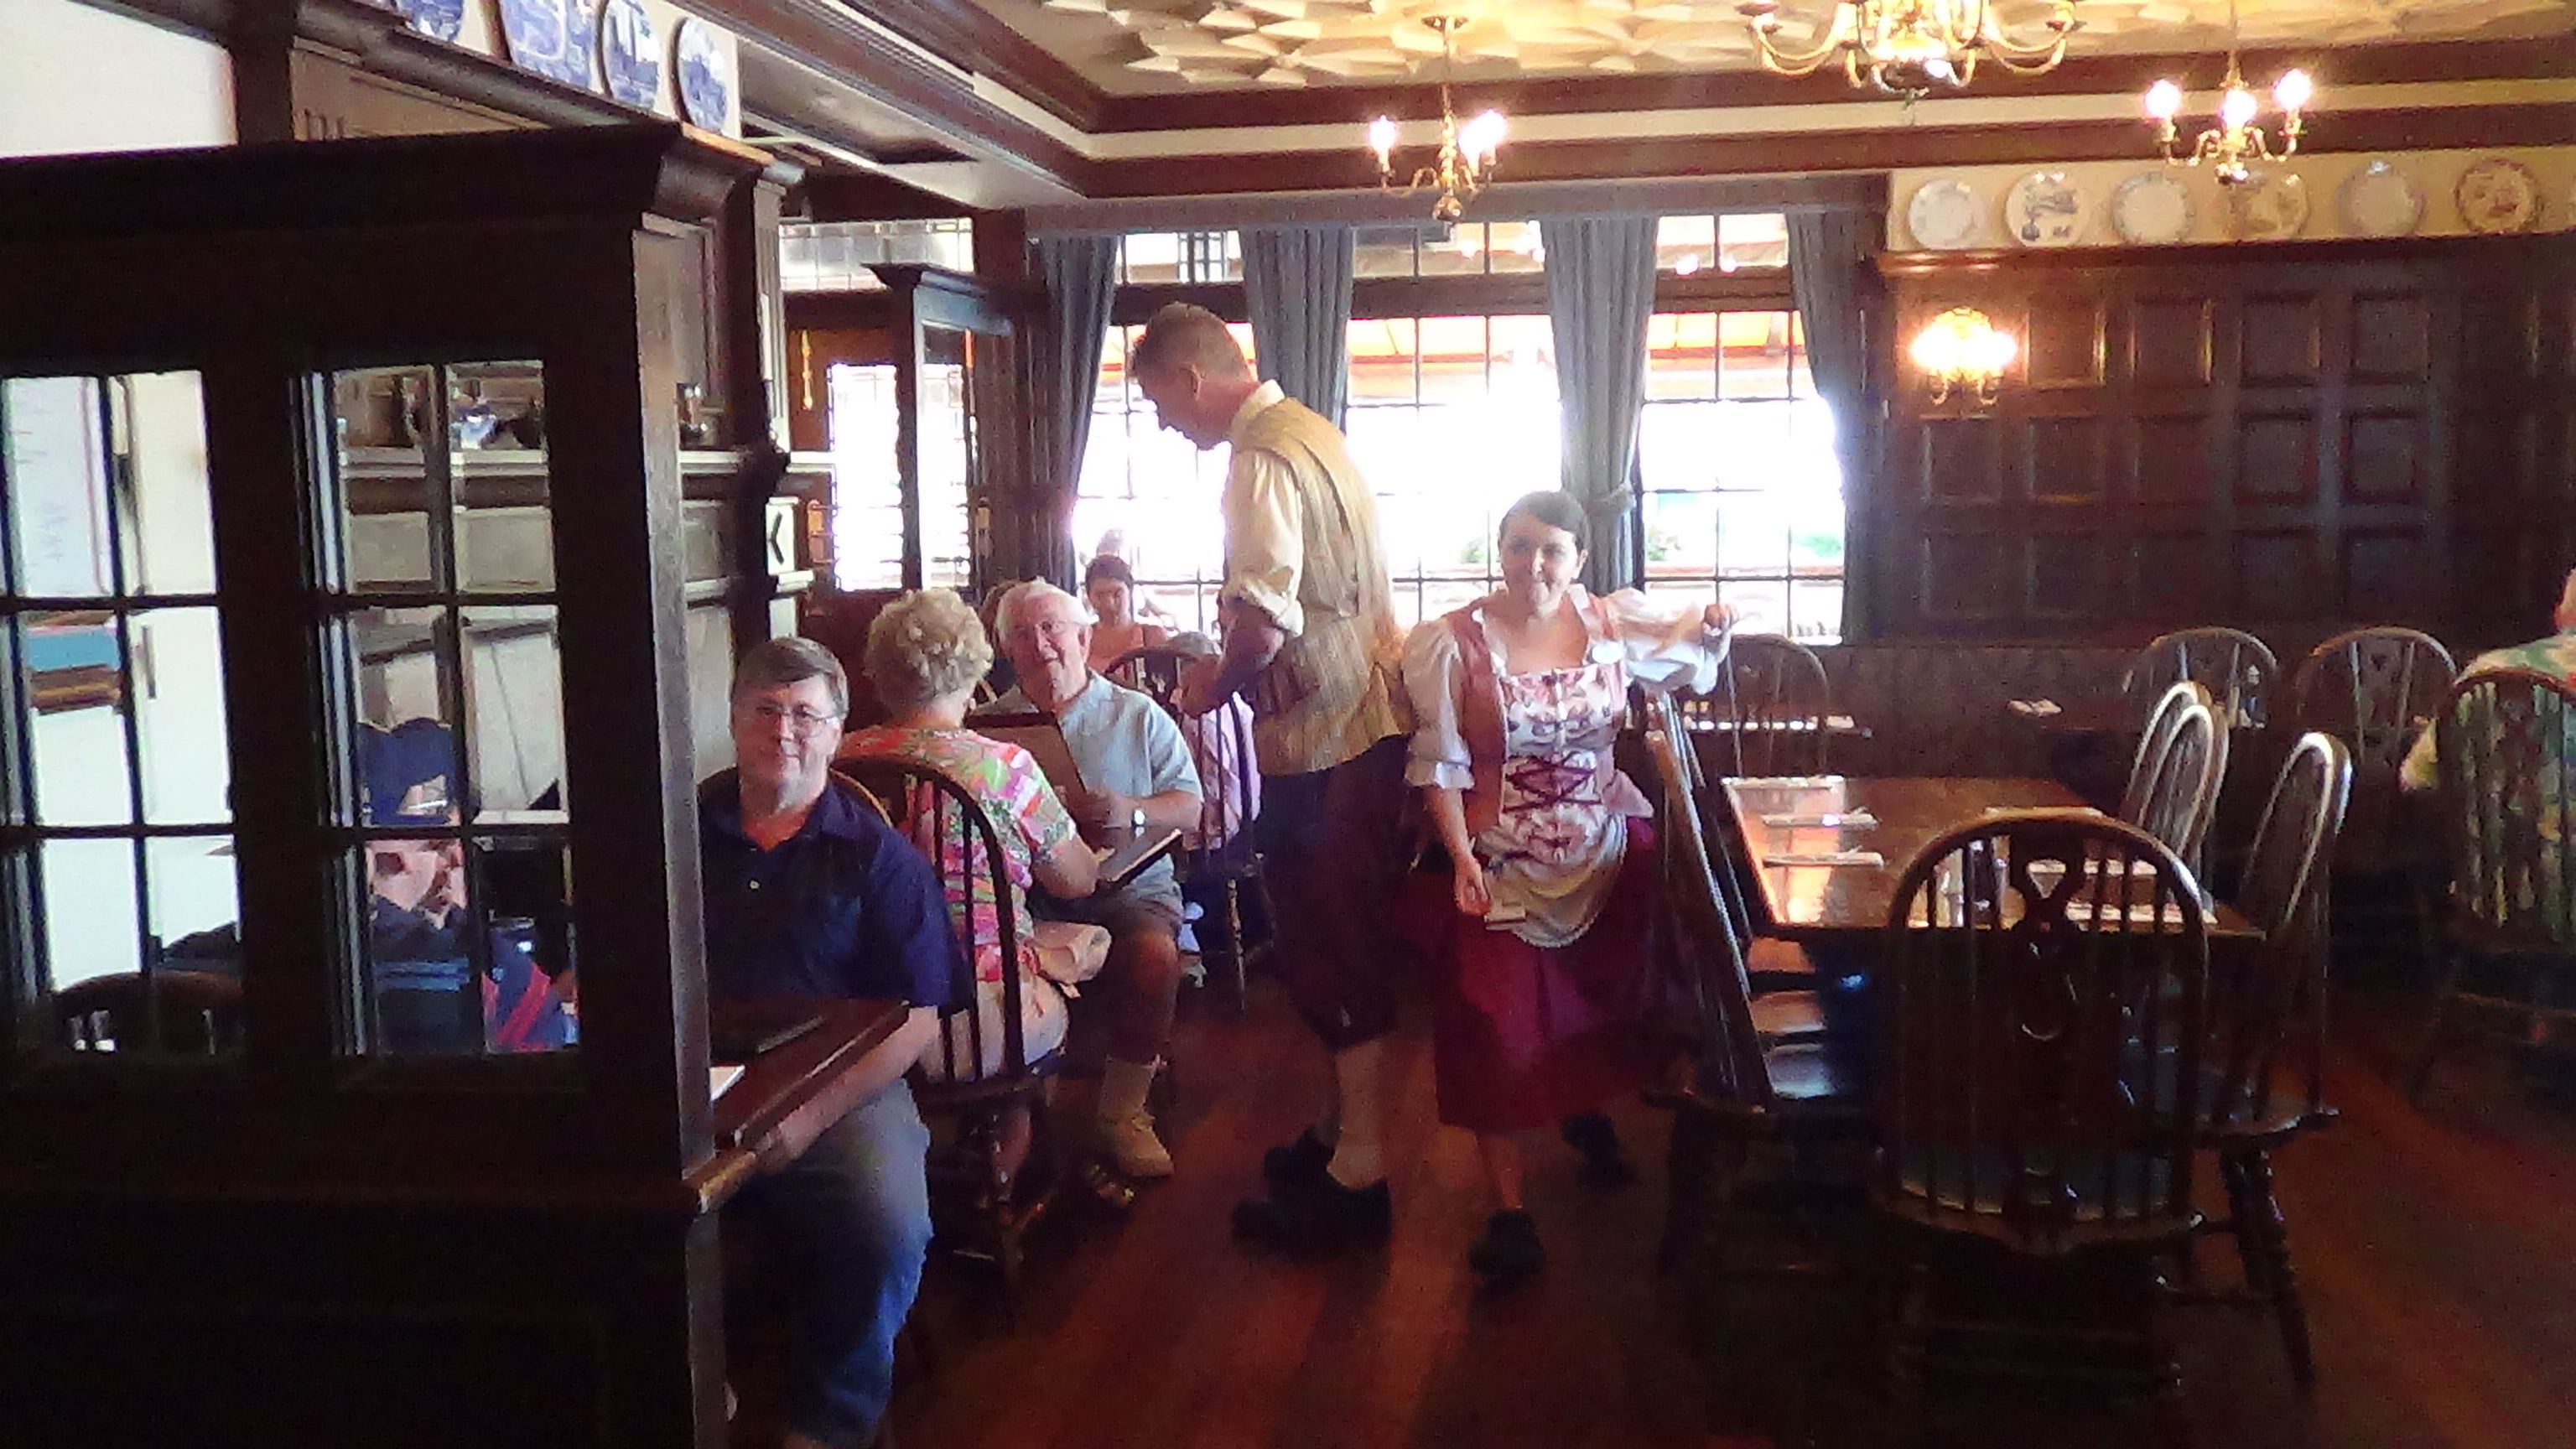 disneydining #epcot servers at the rose & crown pub & dining room